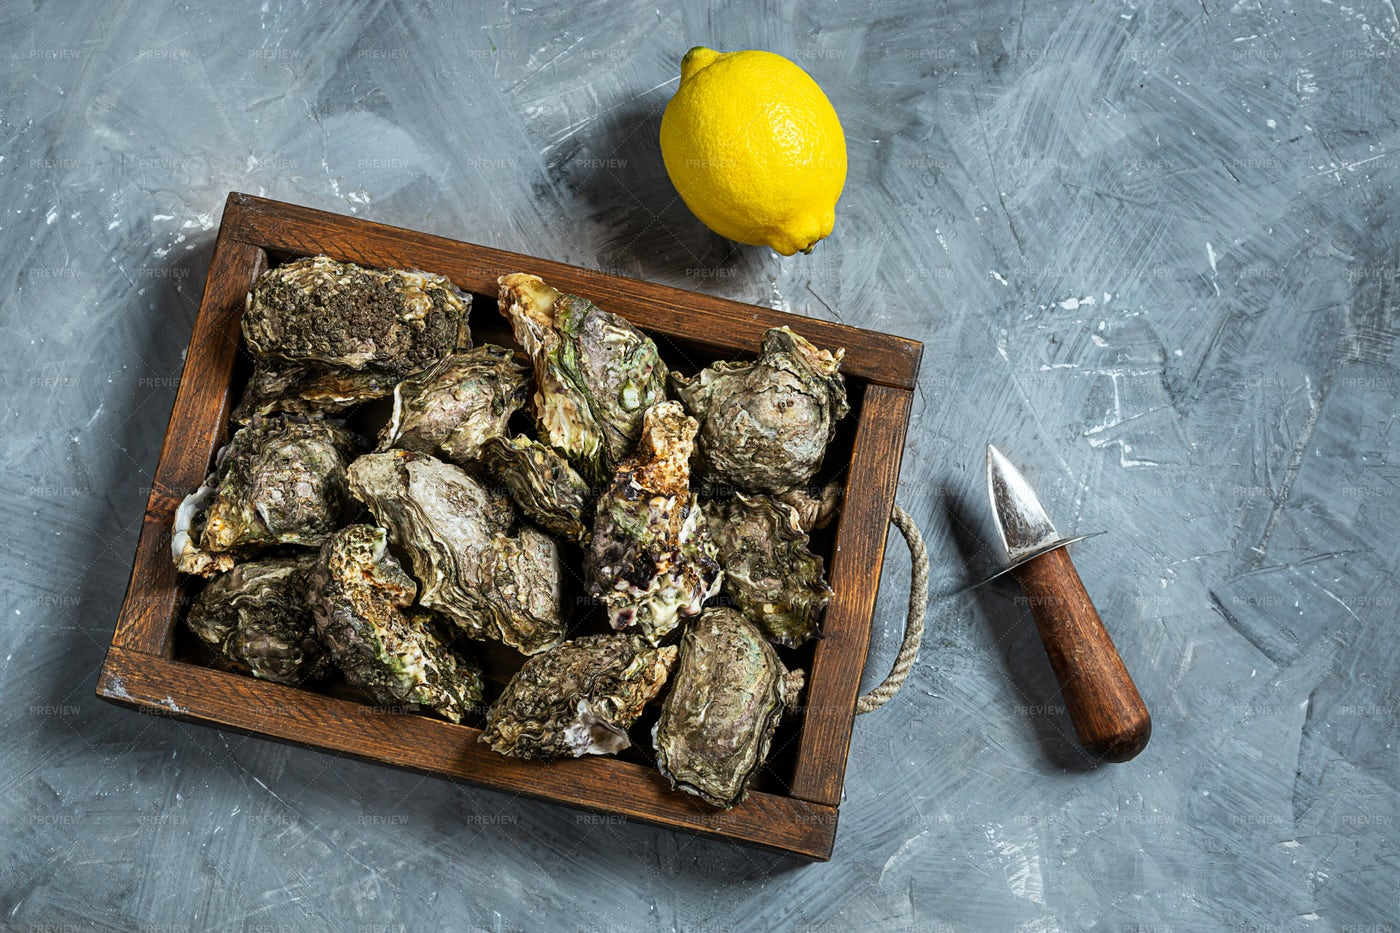 Oysters In A Wooden Box: Stock Photos